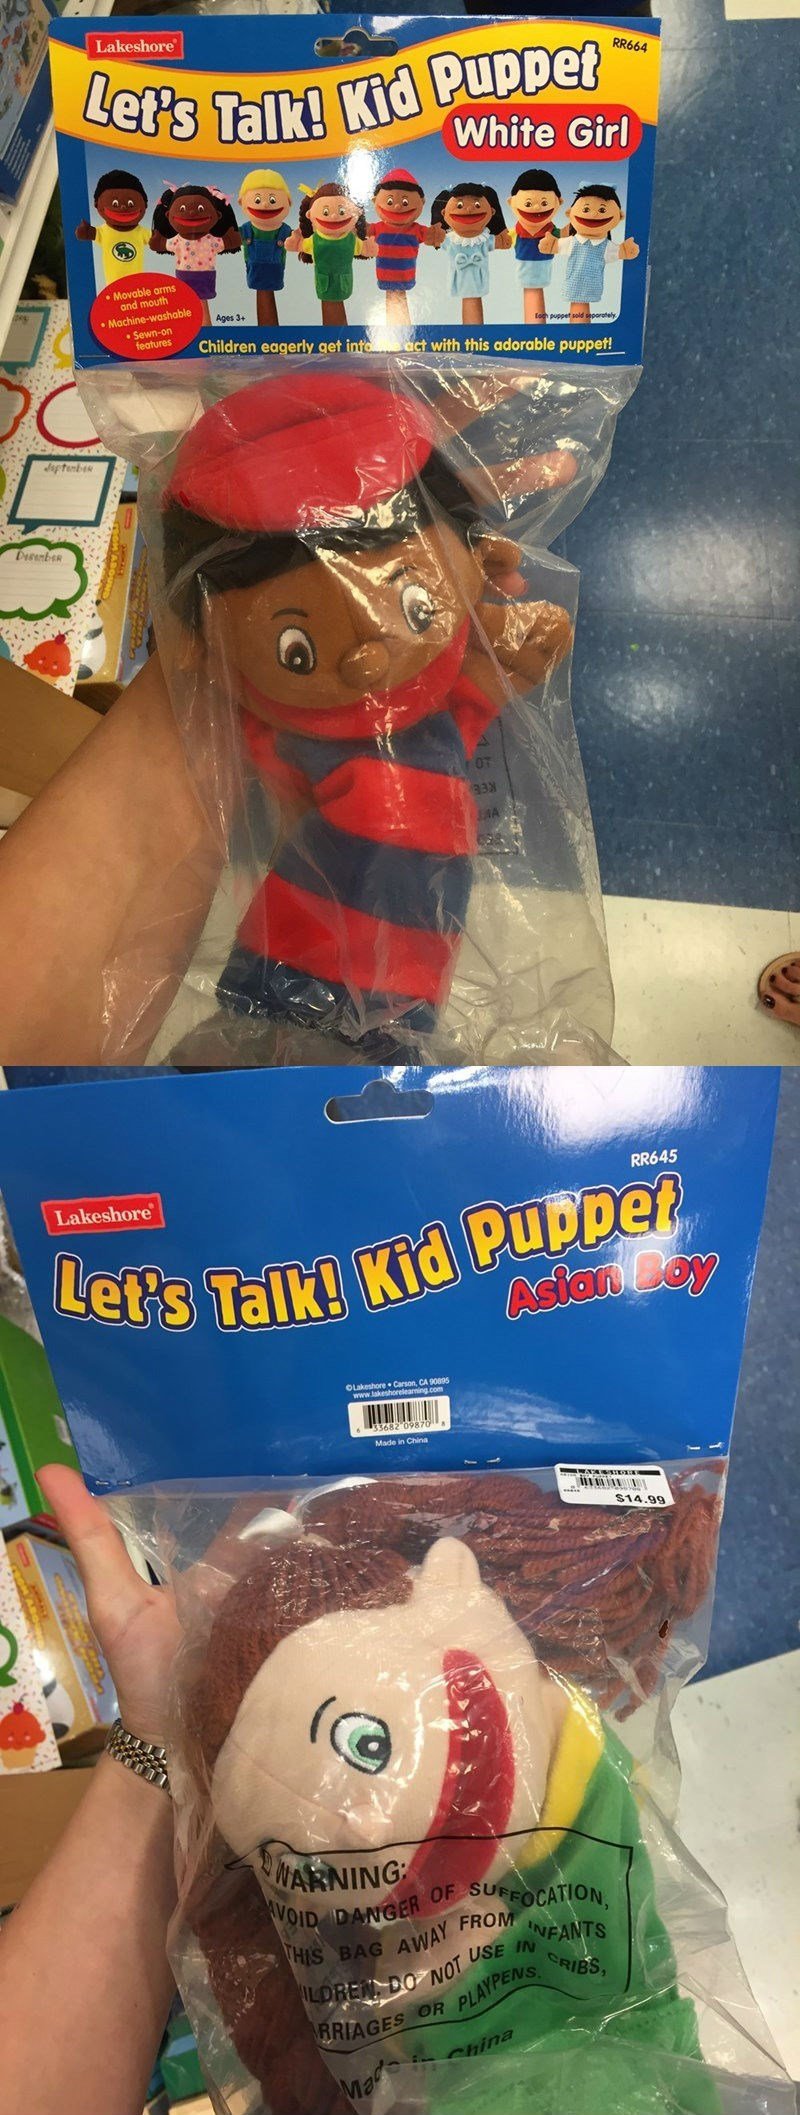 FAIL,race,products,puppets